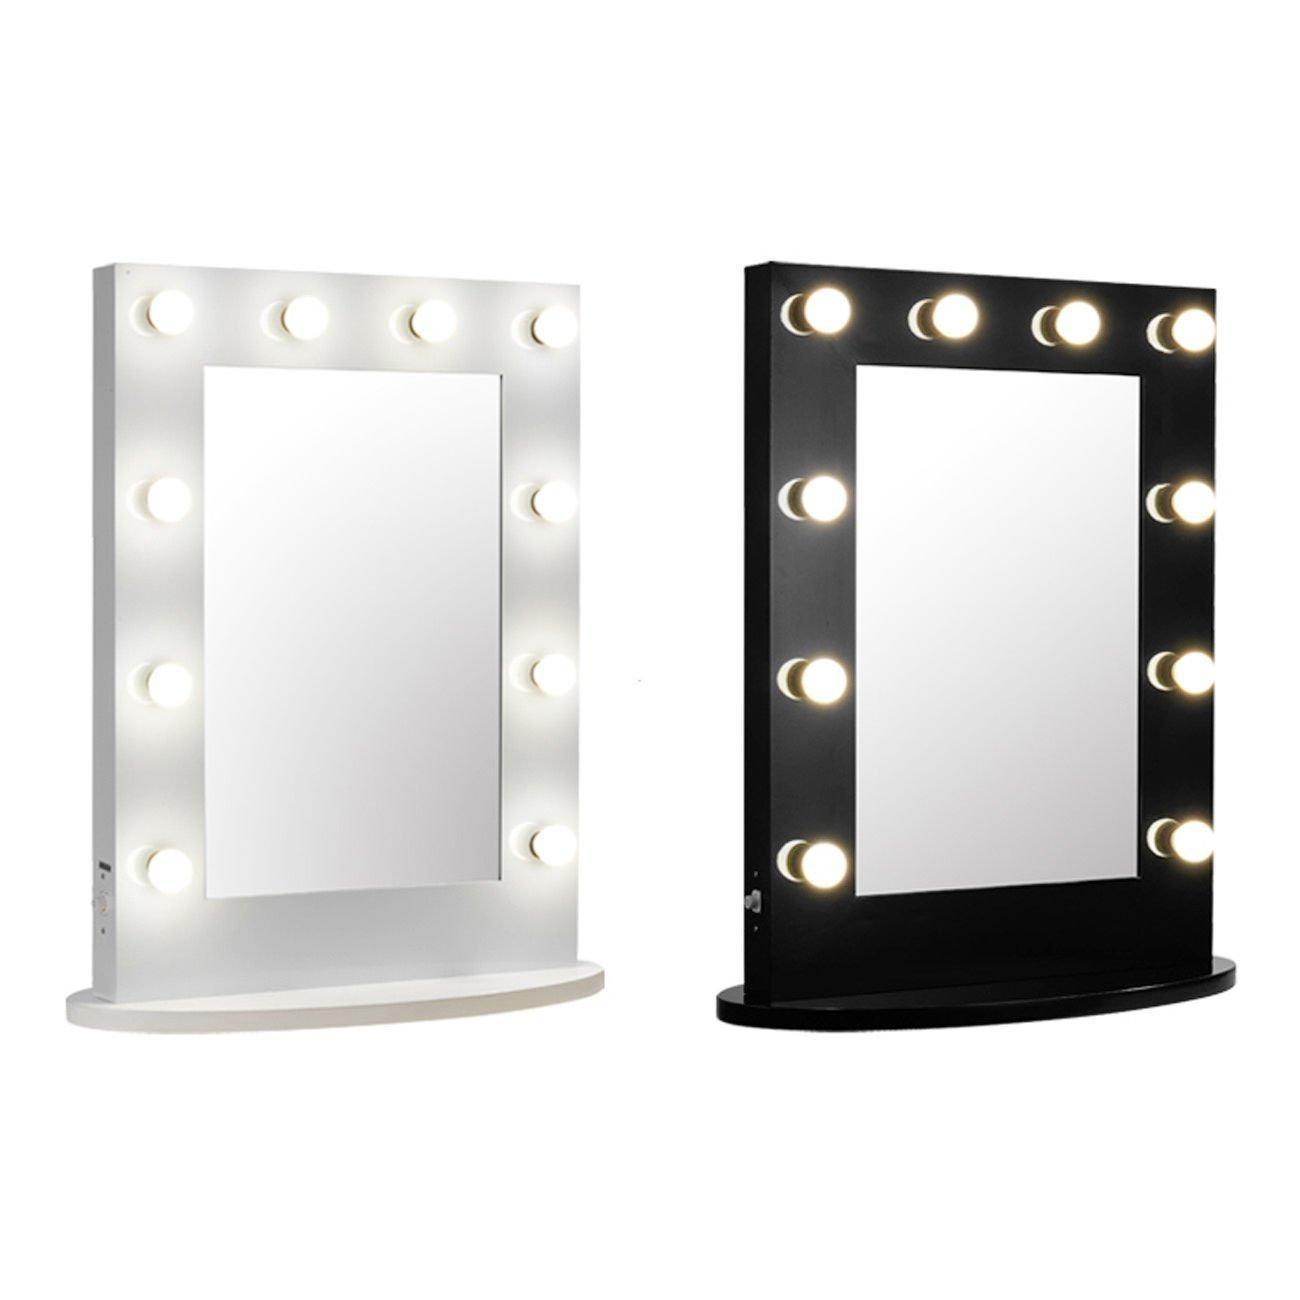 How to install Makeup mirror with lights wall mounted ...